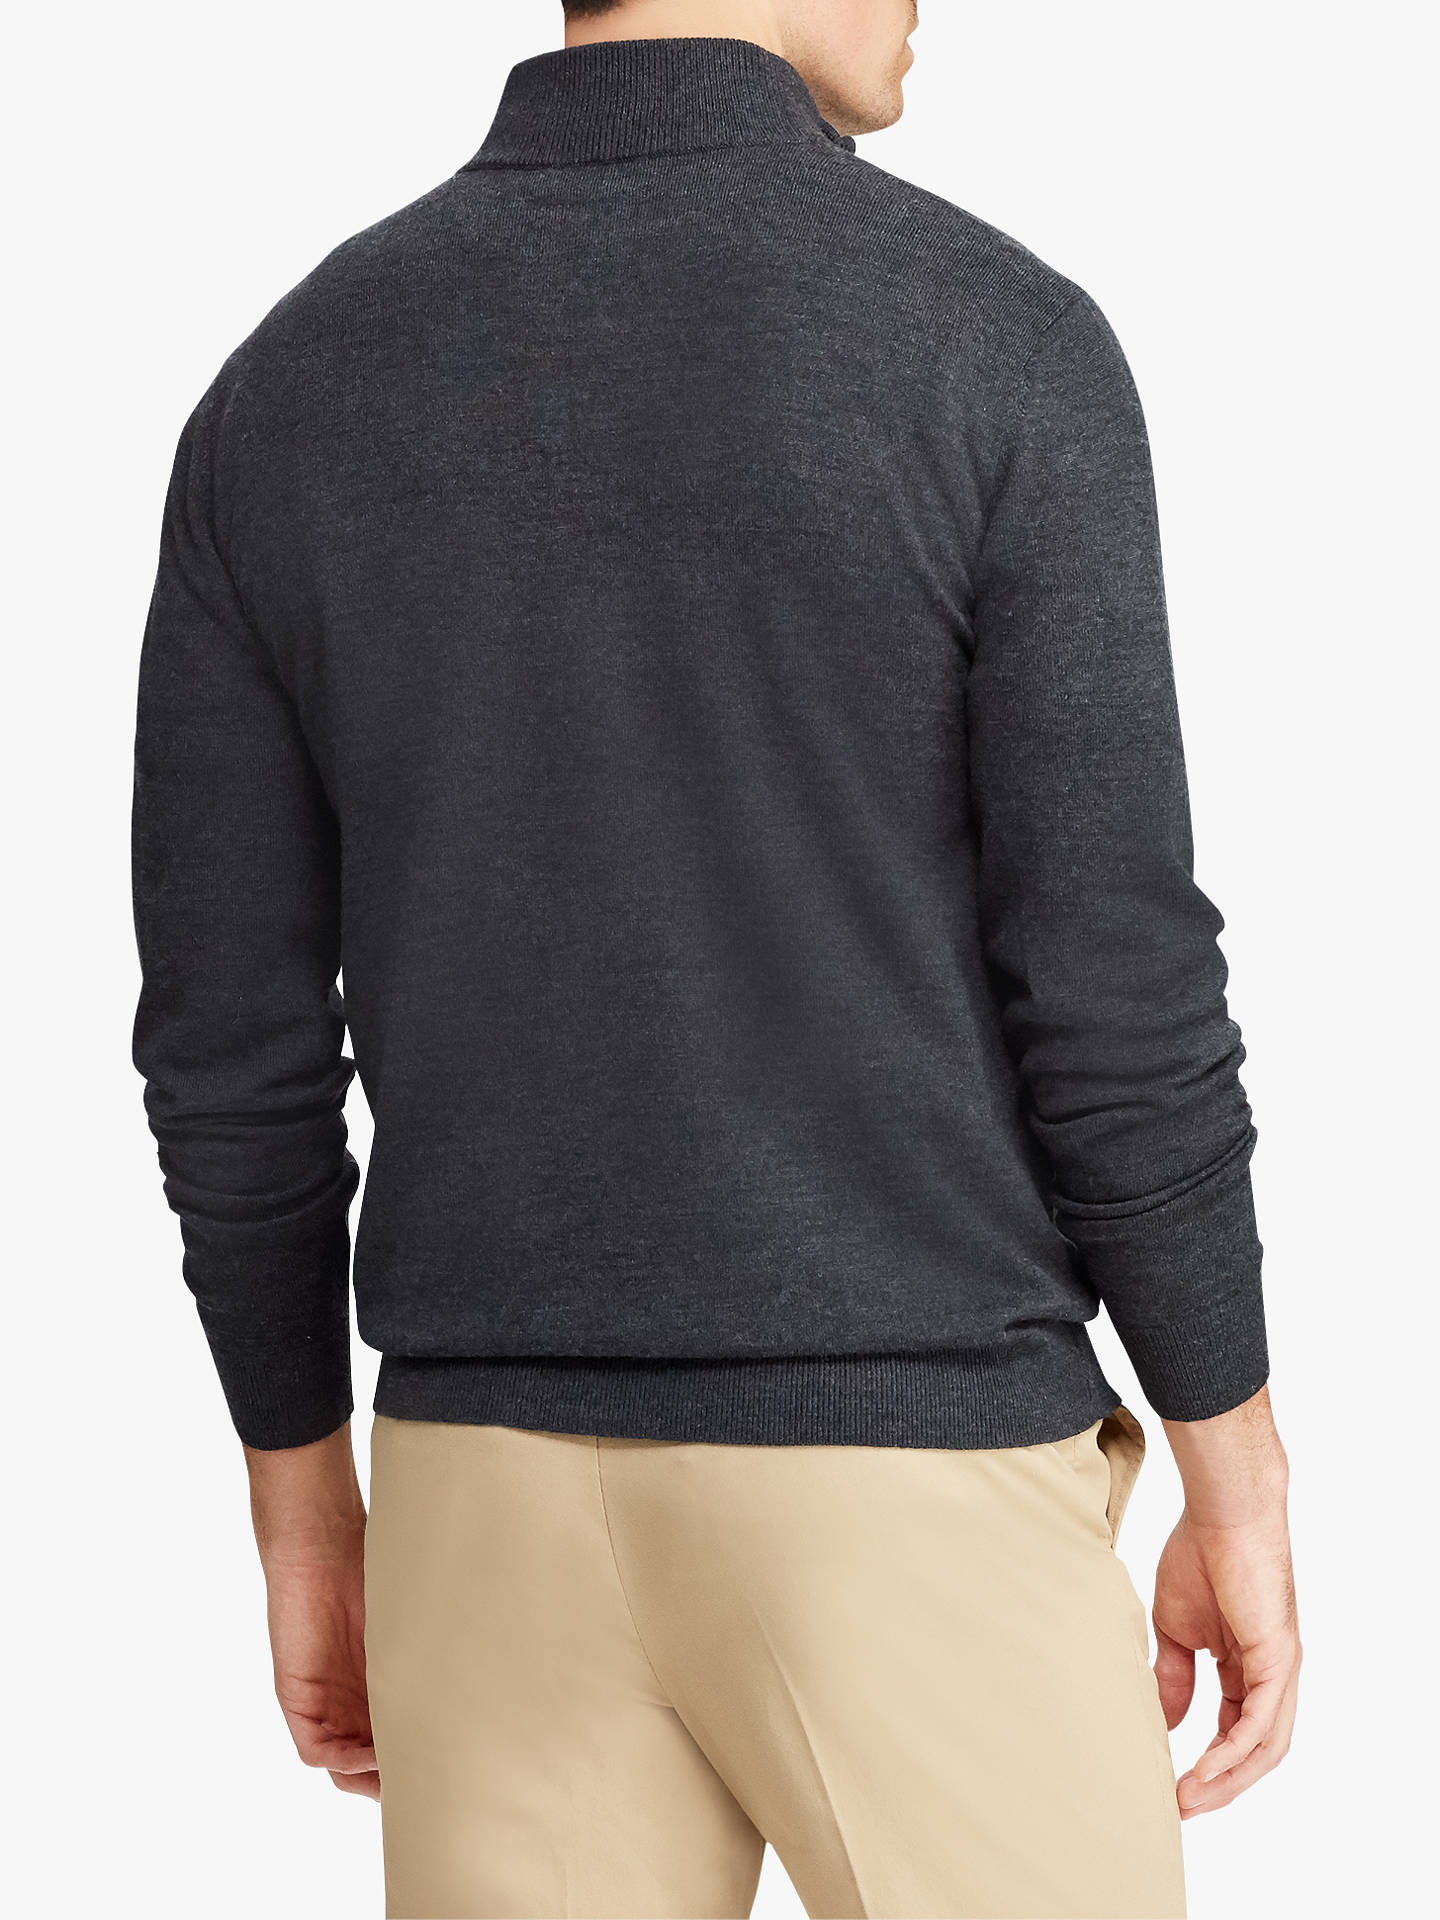 BuyPolo Ralph Lauren Merino Half Zip Jumper, Avery Heather, Avery Heather, M Online at johnlewis.com